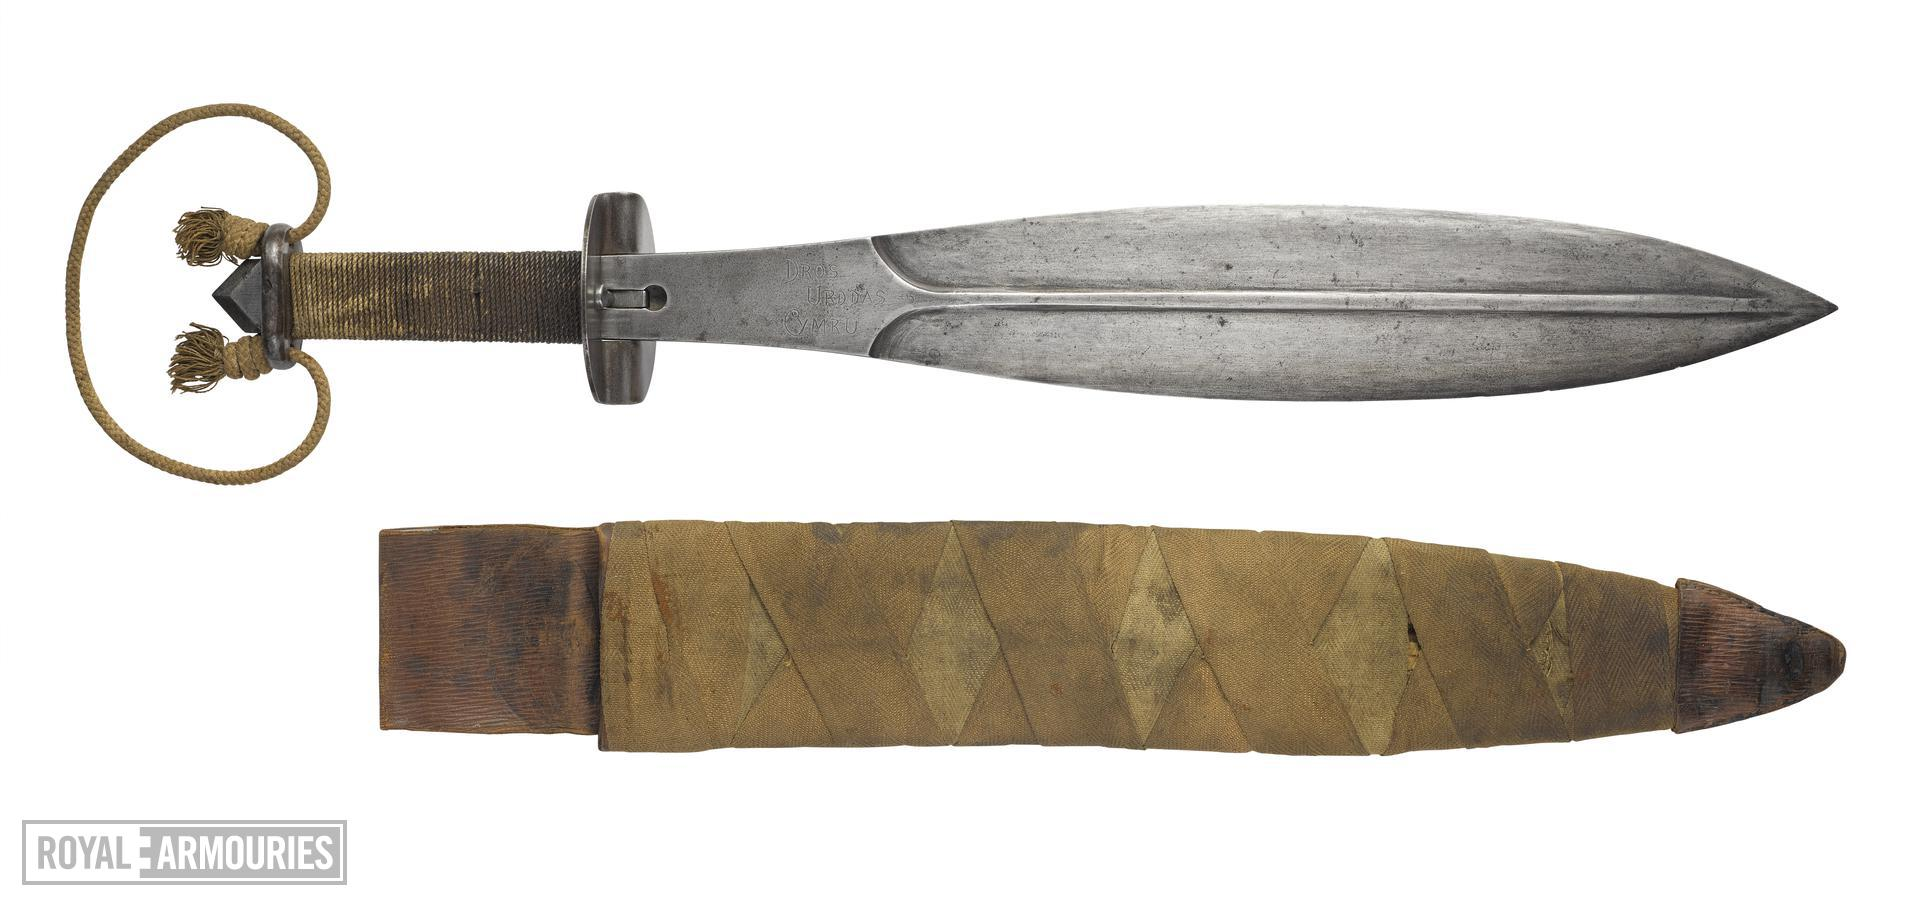 Short sword and scabbard (Trench knife), British, about 1917-1981. Used as a side arm by the 9th Service Battalion of the Royal Welsh Fusiliers.